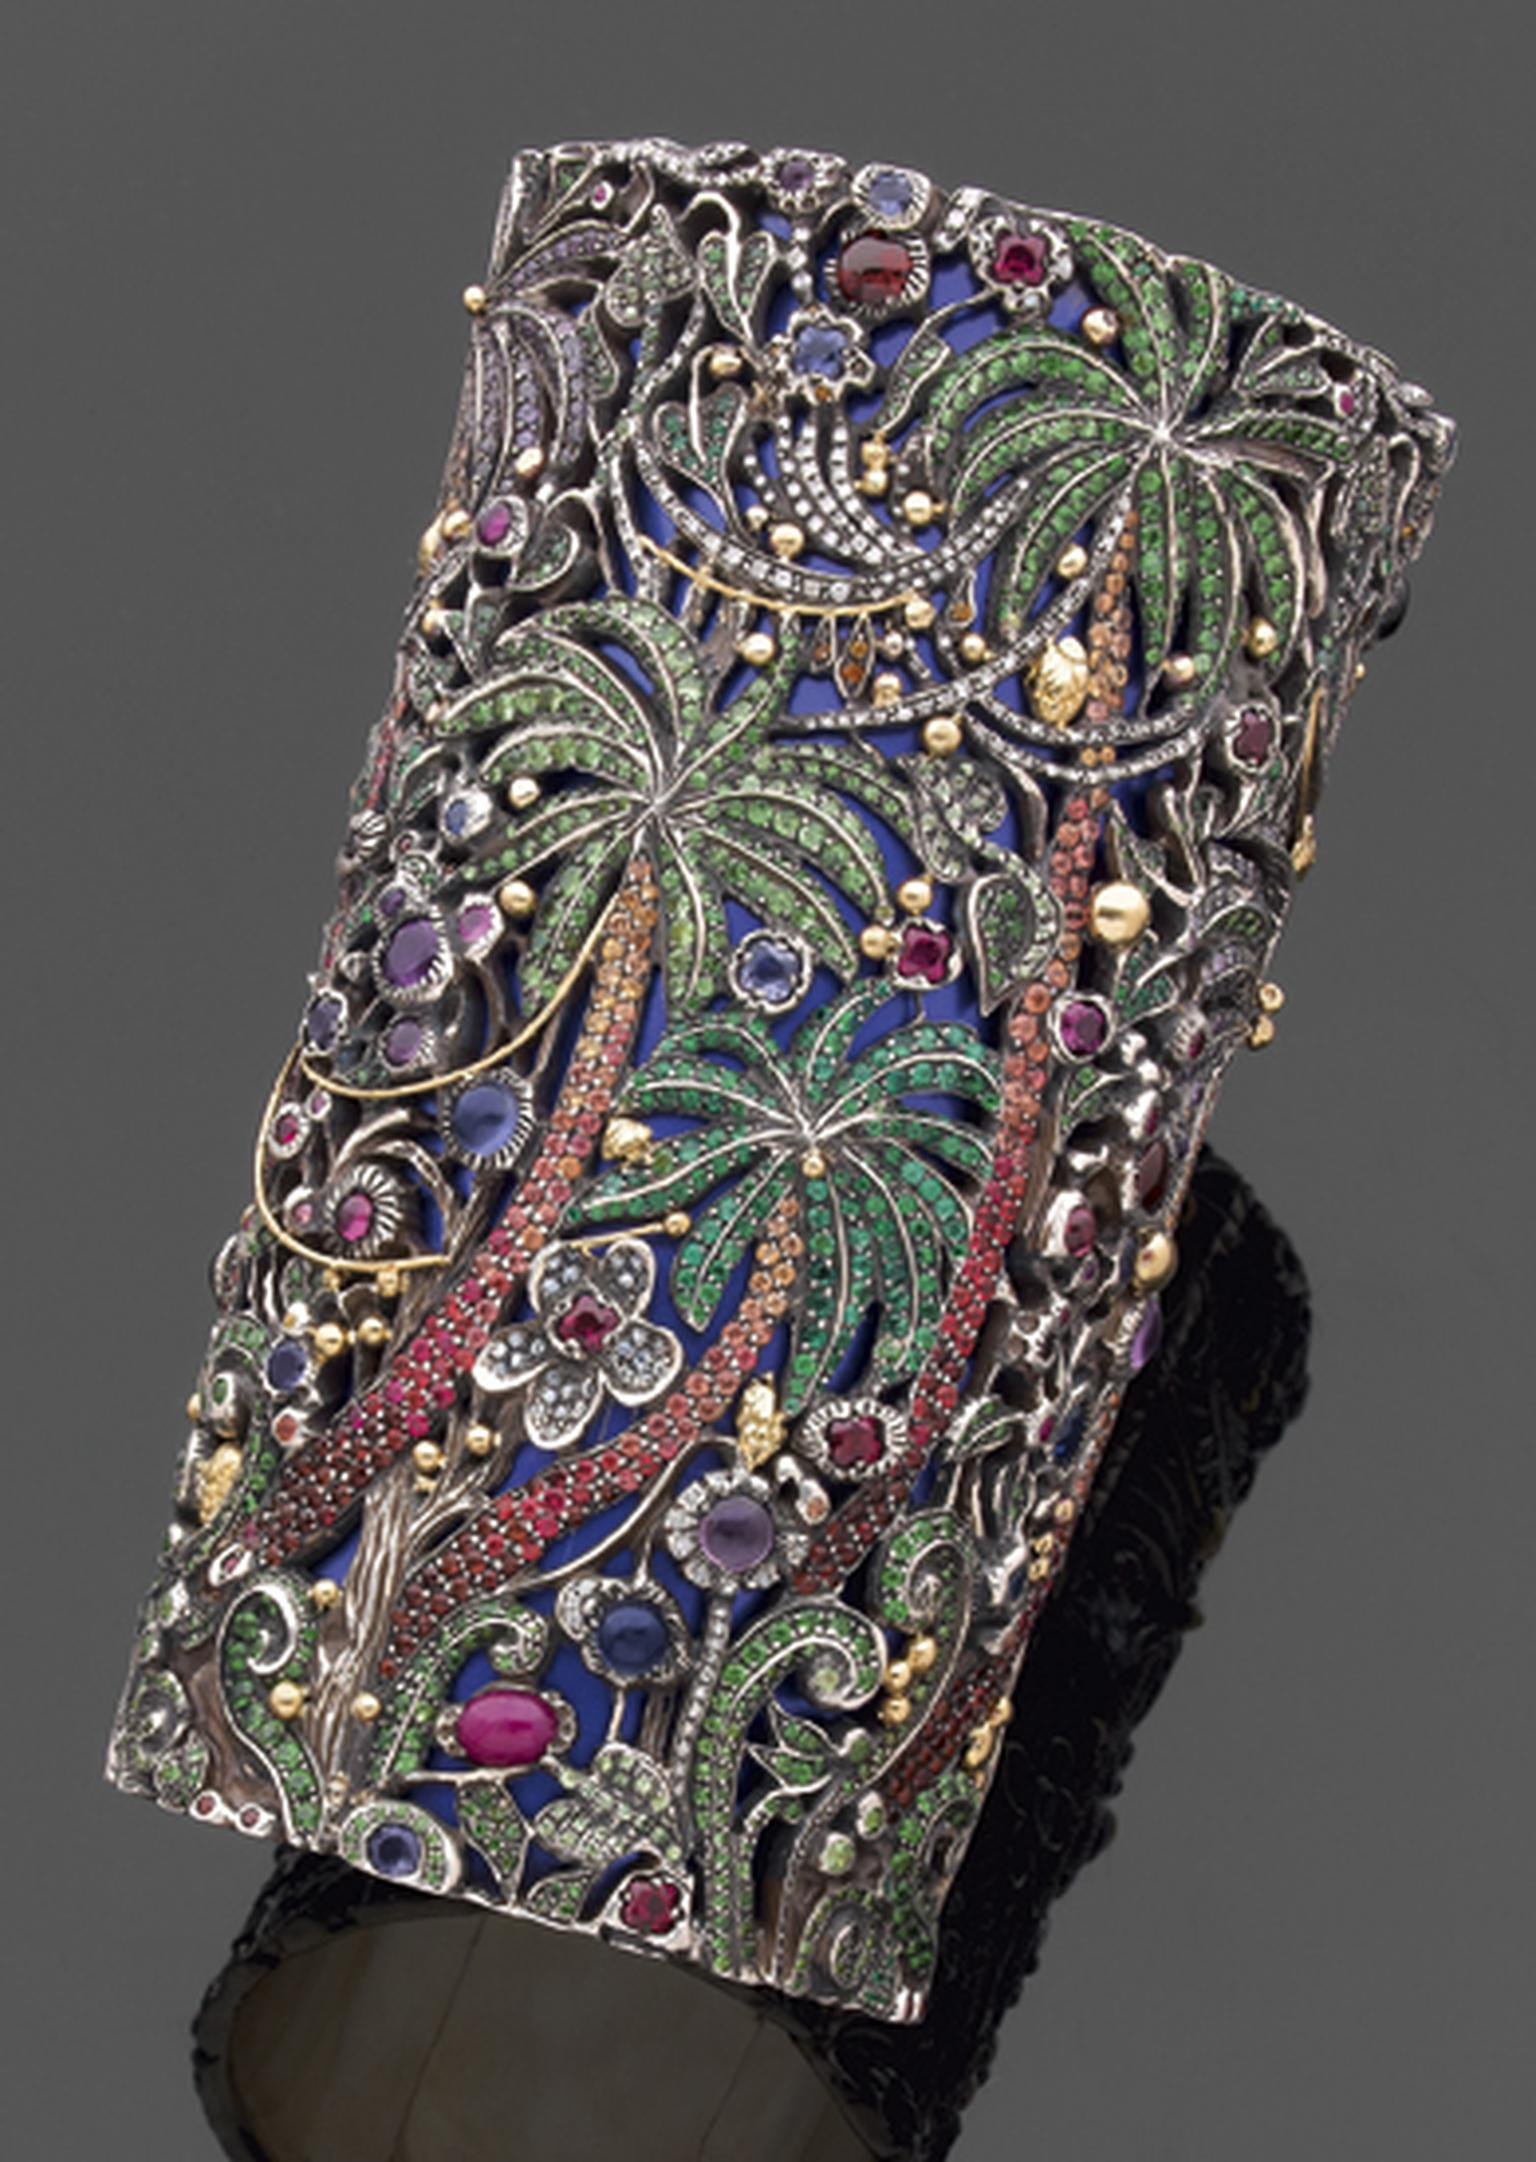 Jean Boggio Jungle cuff in gold and silver with amethyst, aquamarine, emerald, garnet, tsavorite and blue topaz.